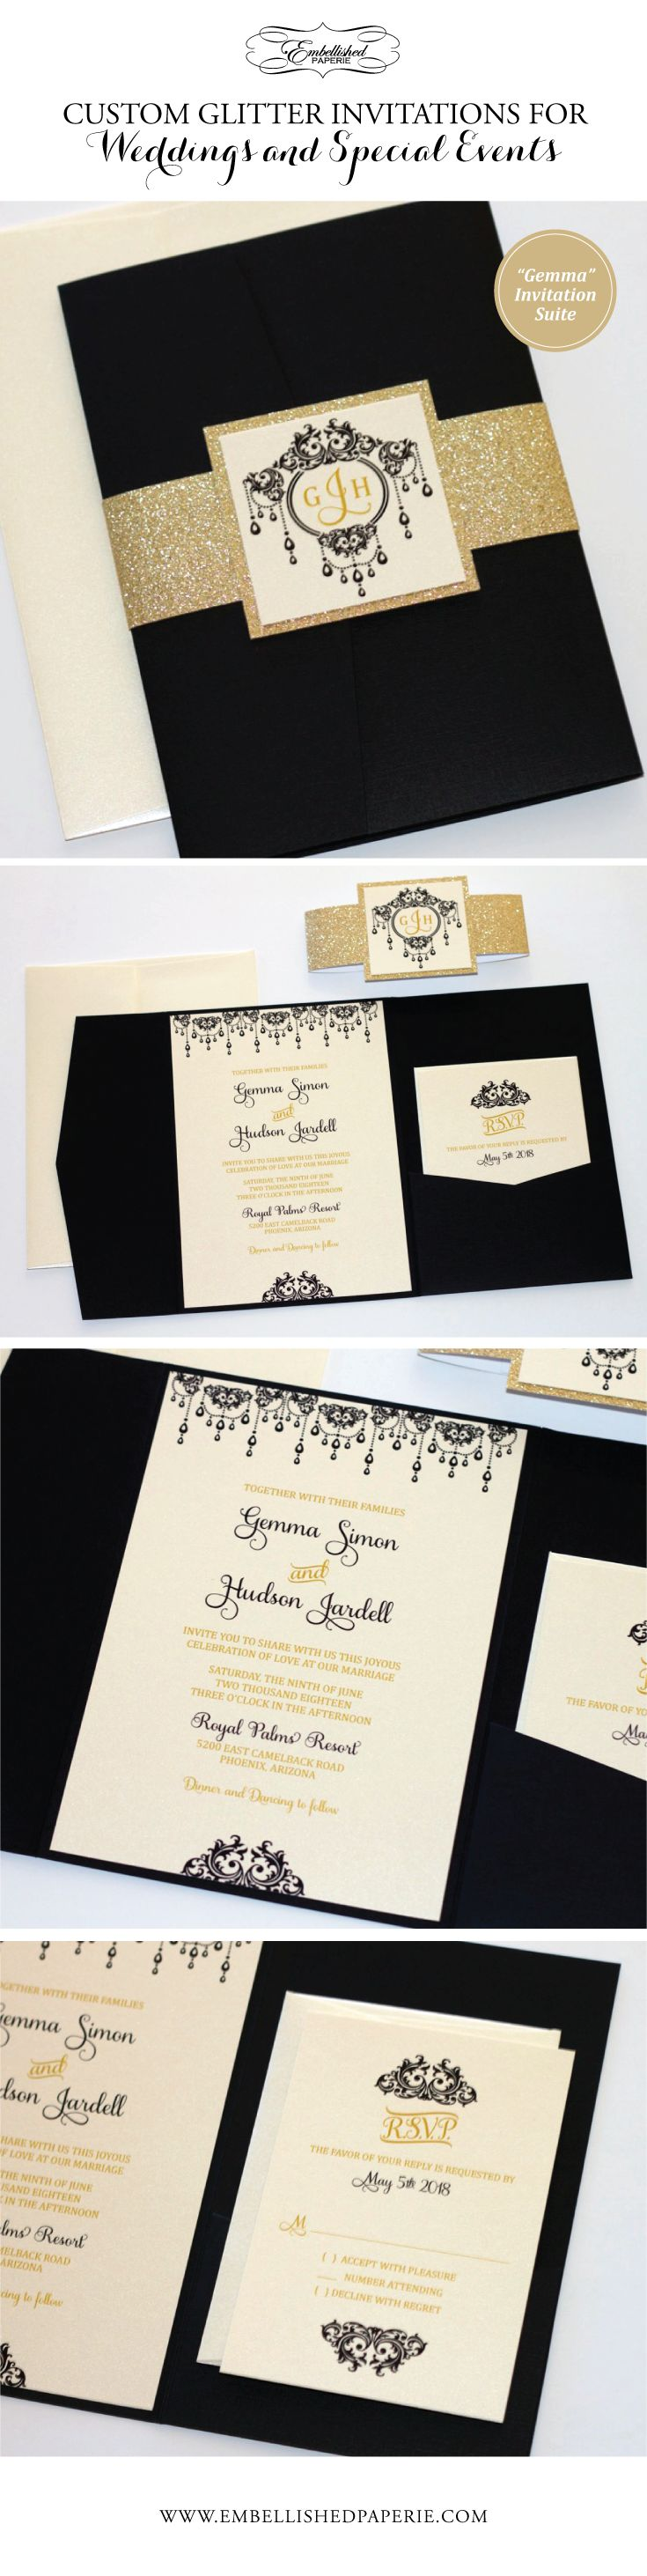 Elegant Glitter Wedding Invitation - Ivory, Black and Gold Glitter Wedding Invitation - Glitter Belly Band, Black Pocket folder - Elegant Wedding Invitation with Ornate Scroll Design. Colors can be customized.  www.embellishedpaperie.com